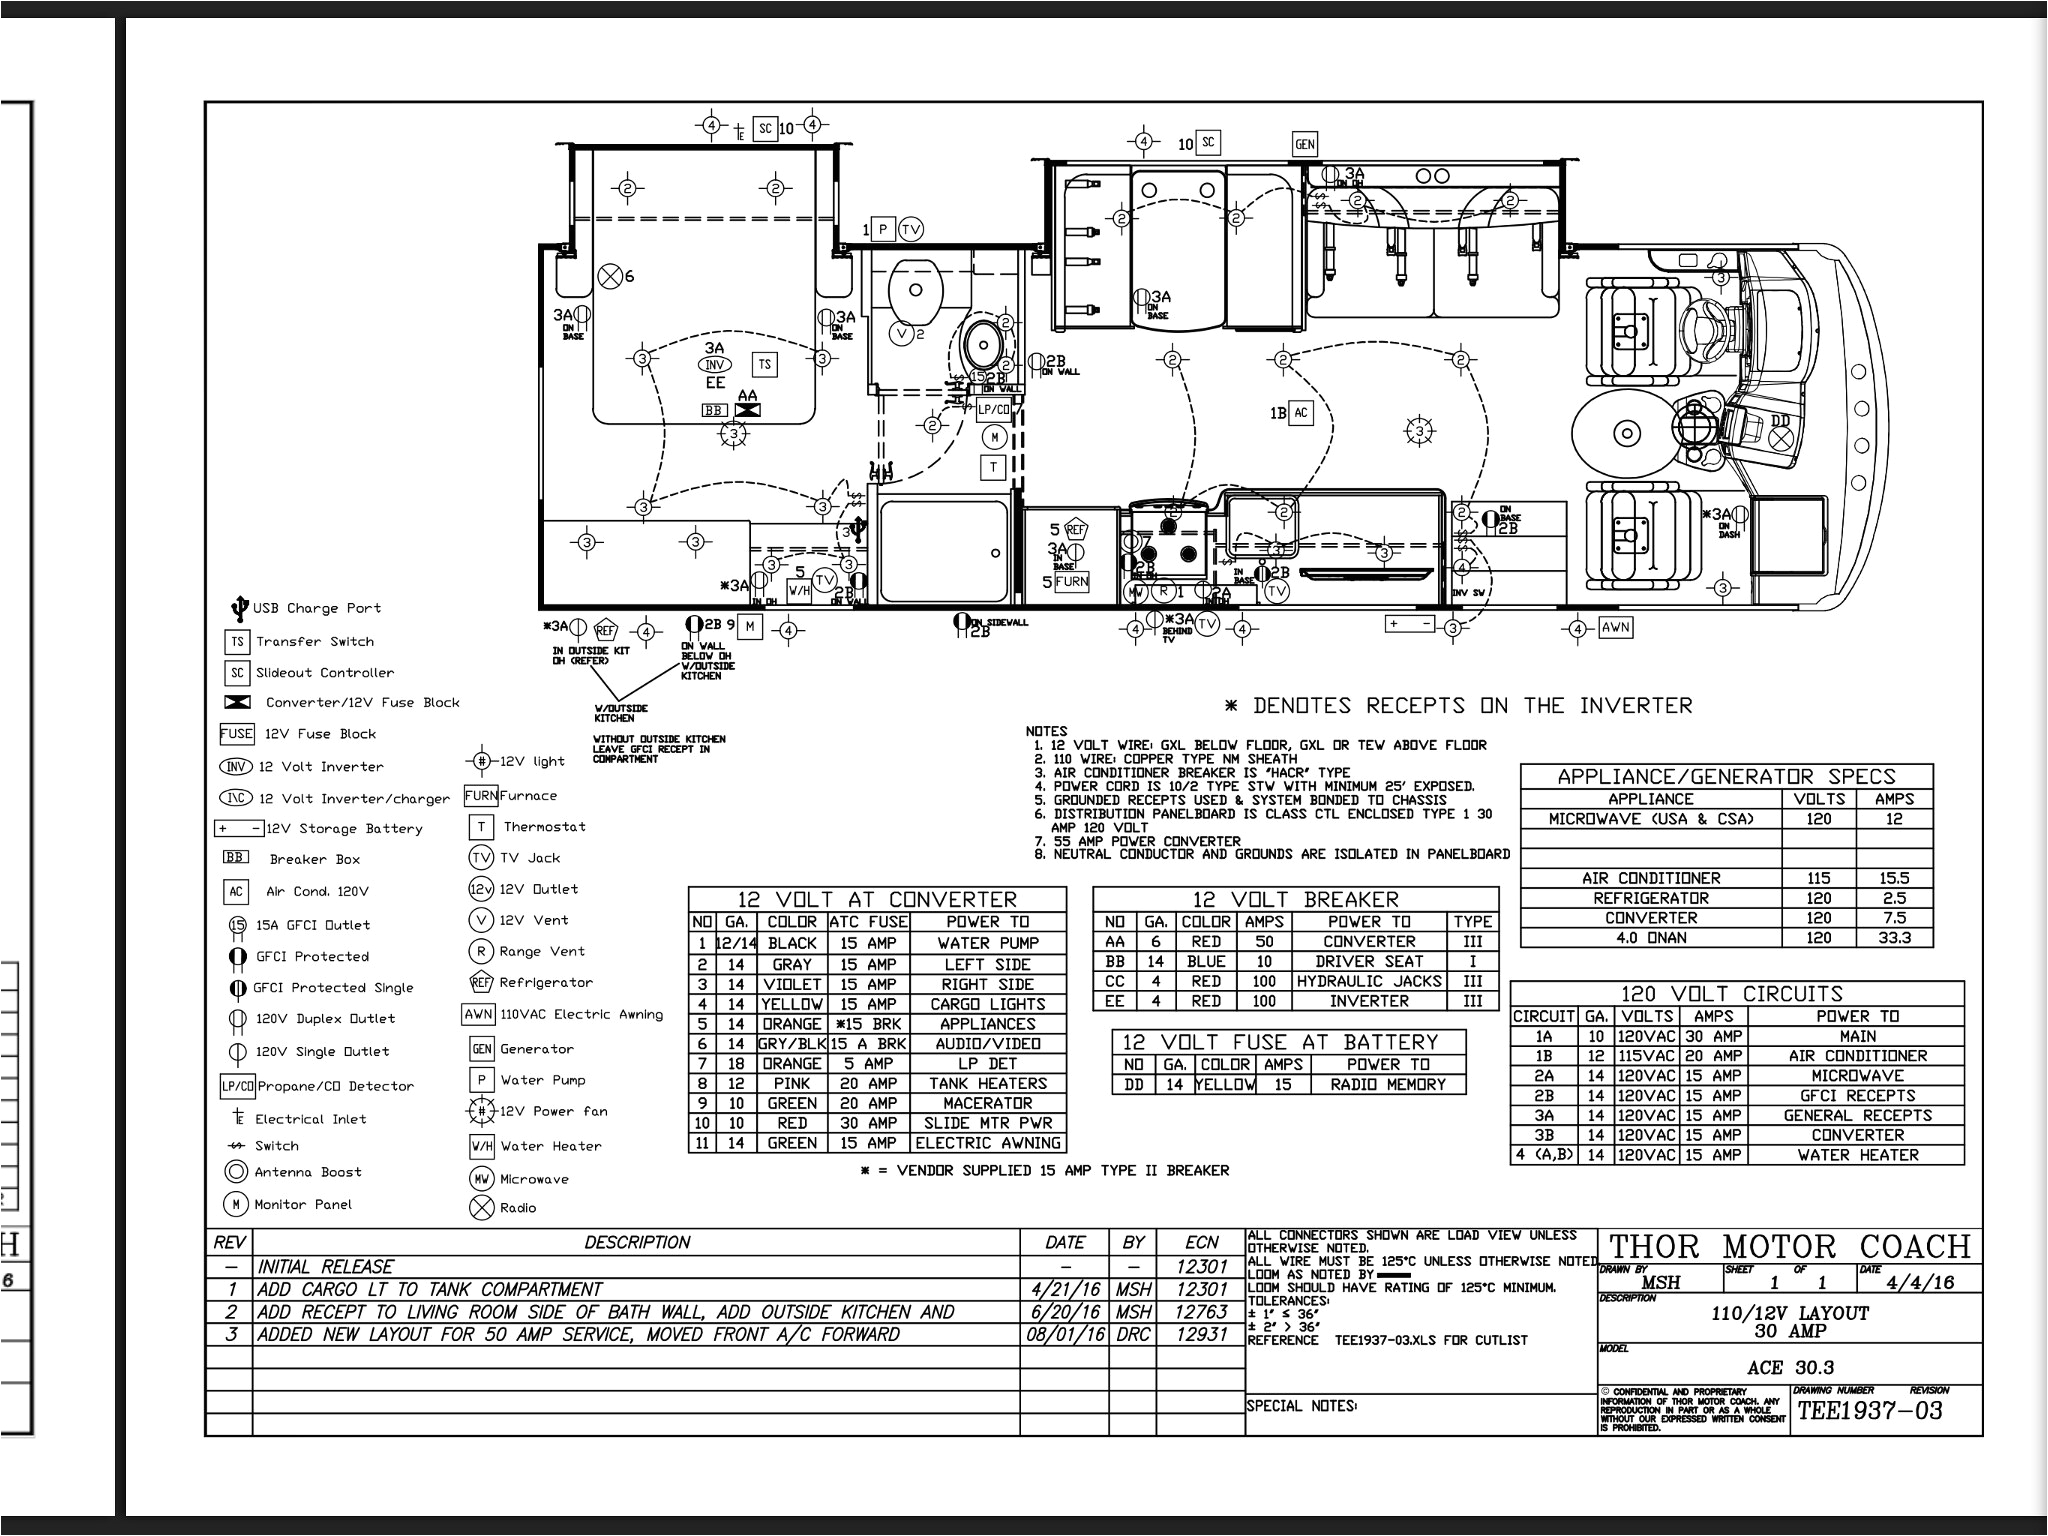 2018 thor a c e 30 3 electrical diagram thor forums fleetwood rv wiring diagram this image has